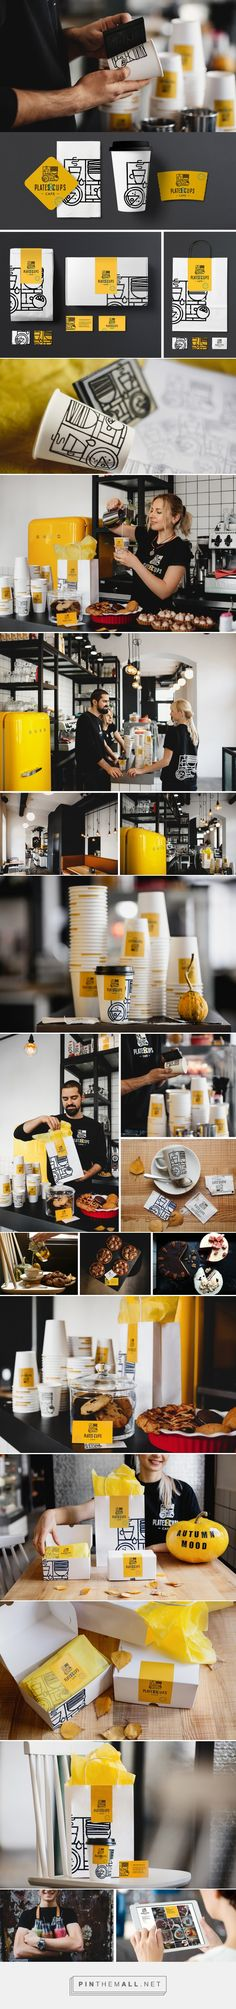 Plates&Cups Cafe Branding by Olena Fedorova   Fivestar Branding Agency – Design and Branding Agency & Curated Inspiration Gallery #cafebranding #branding #brand #packaging #design #designinspiration